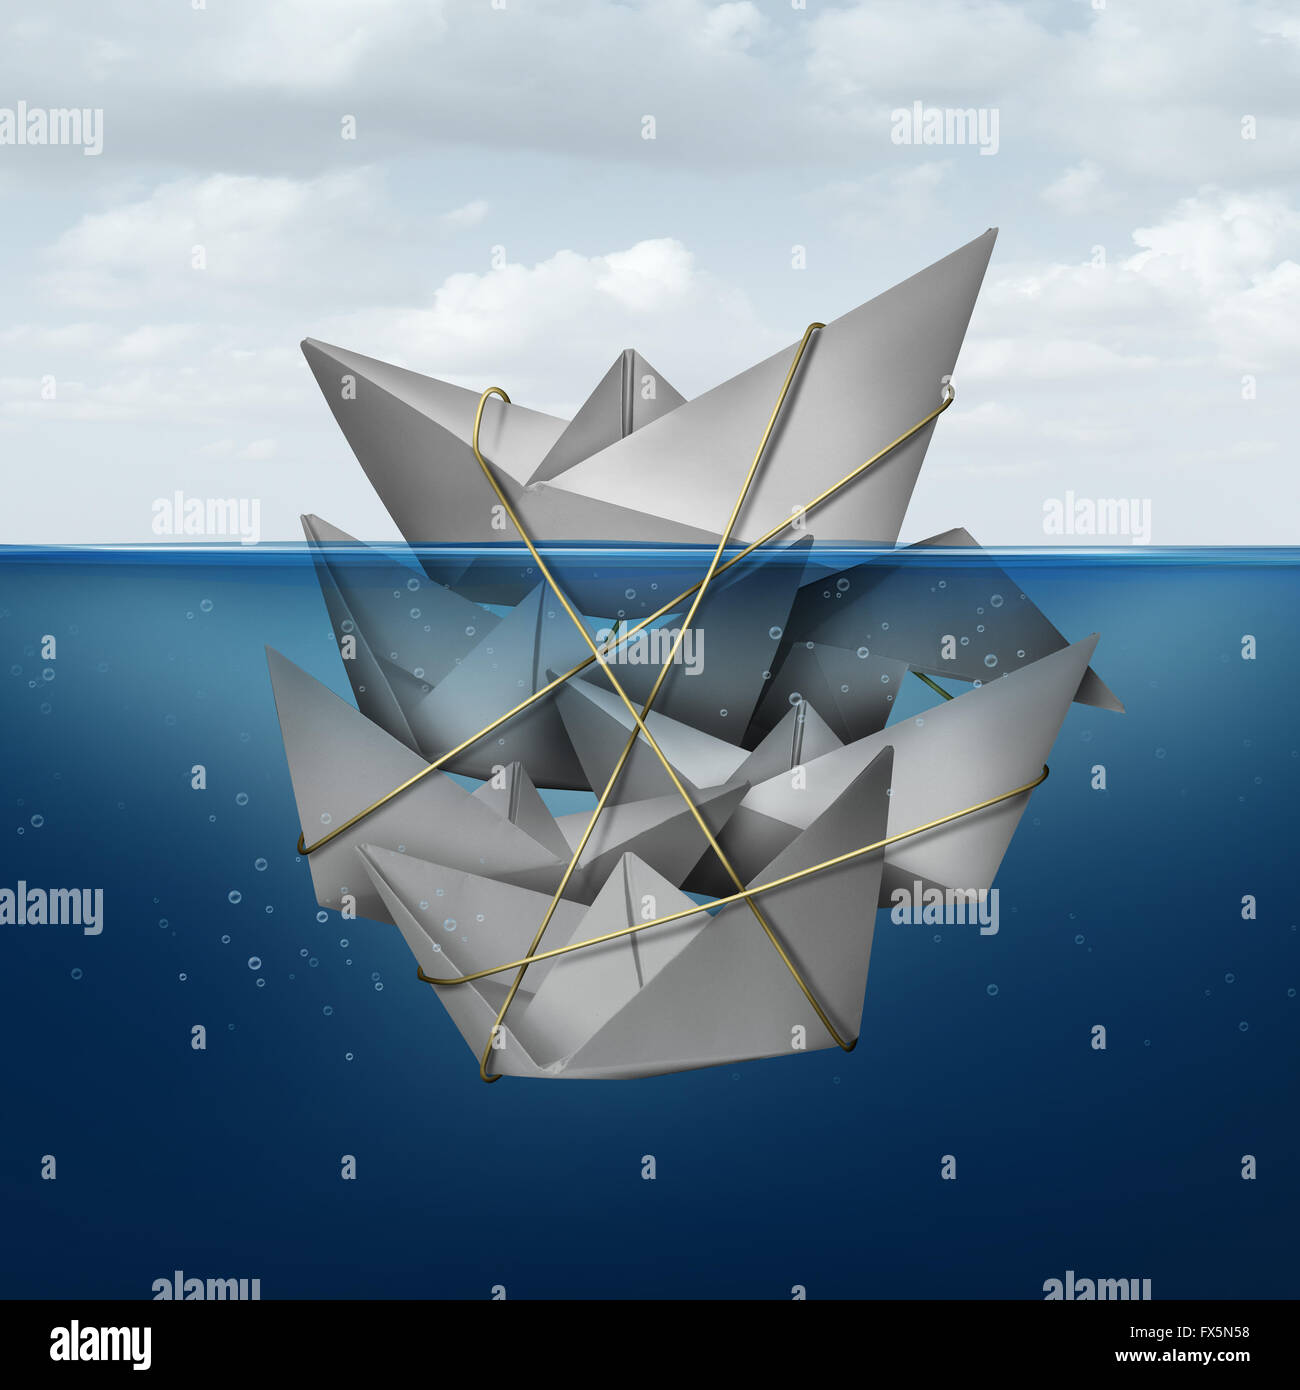 Living off others concept and corner the market symbol as a dominant paper boat dominating a group of smaller boats - Stock Image